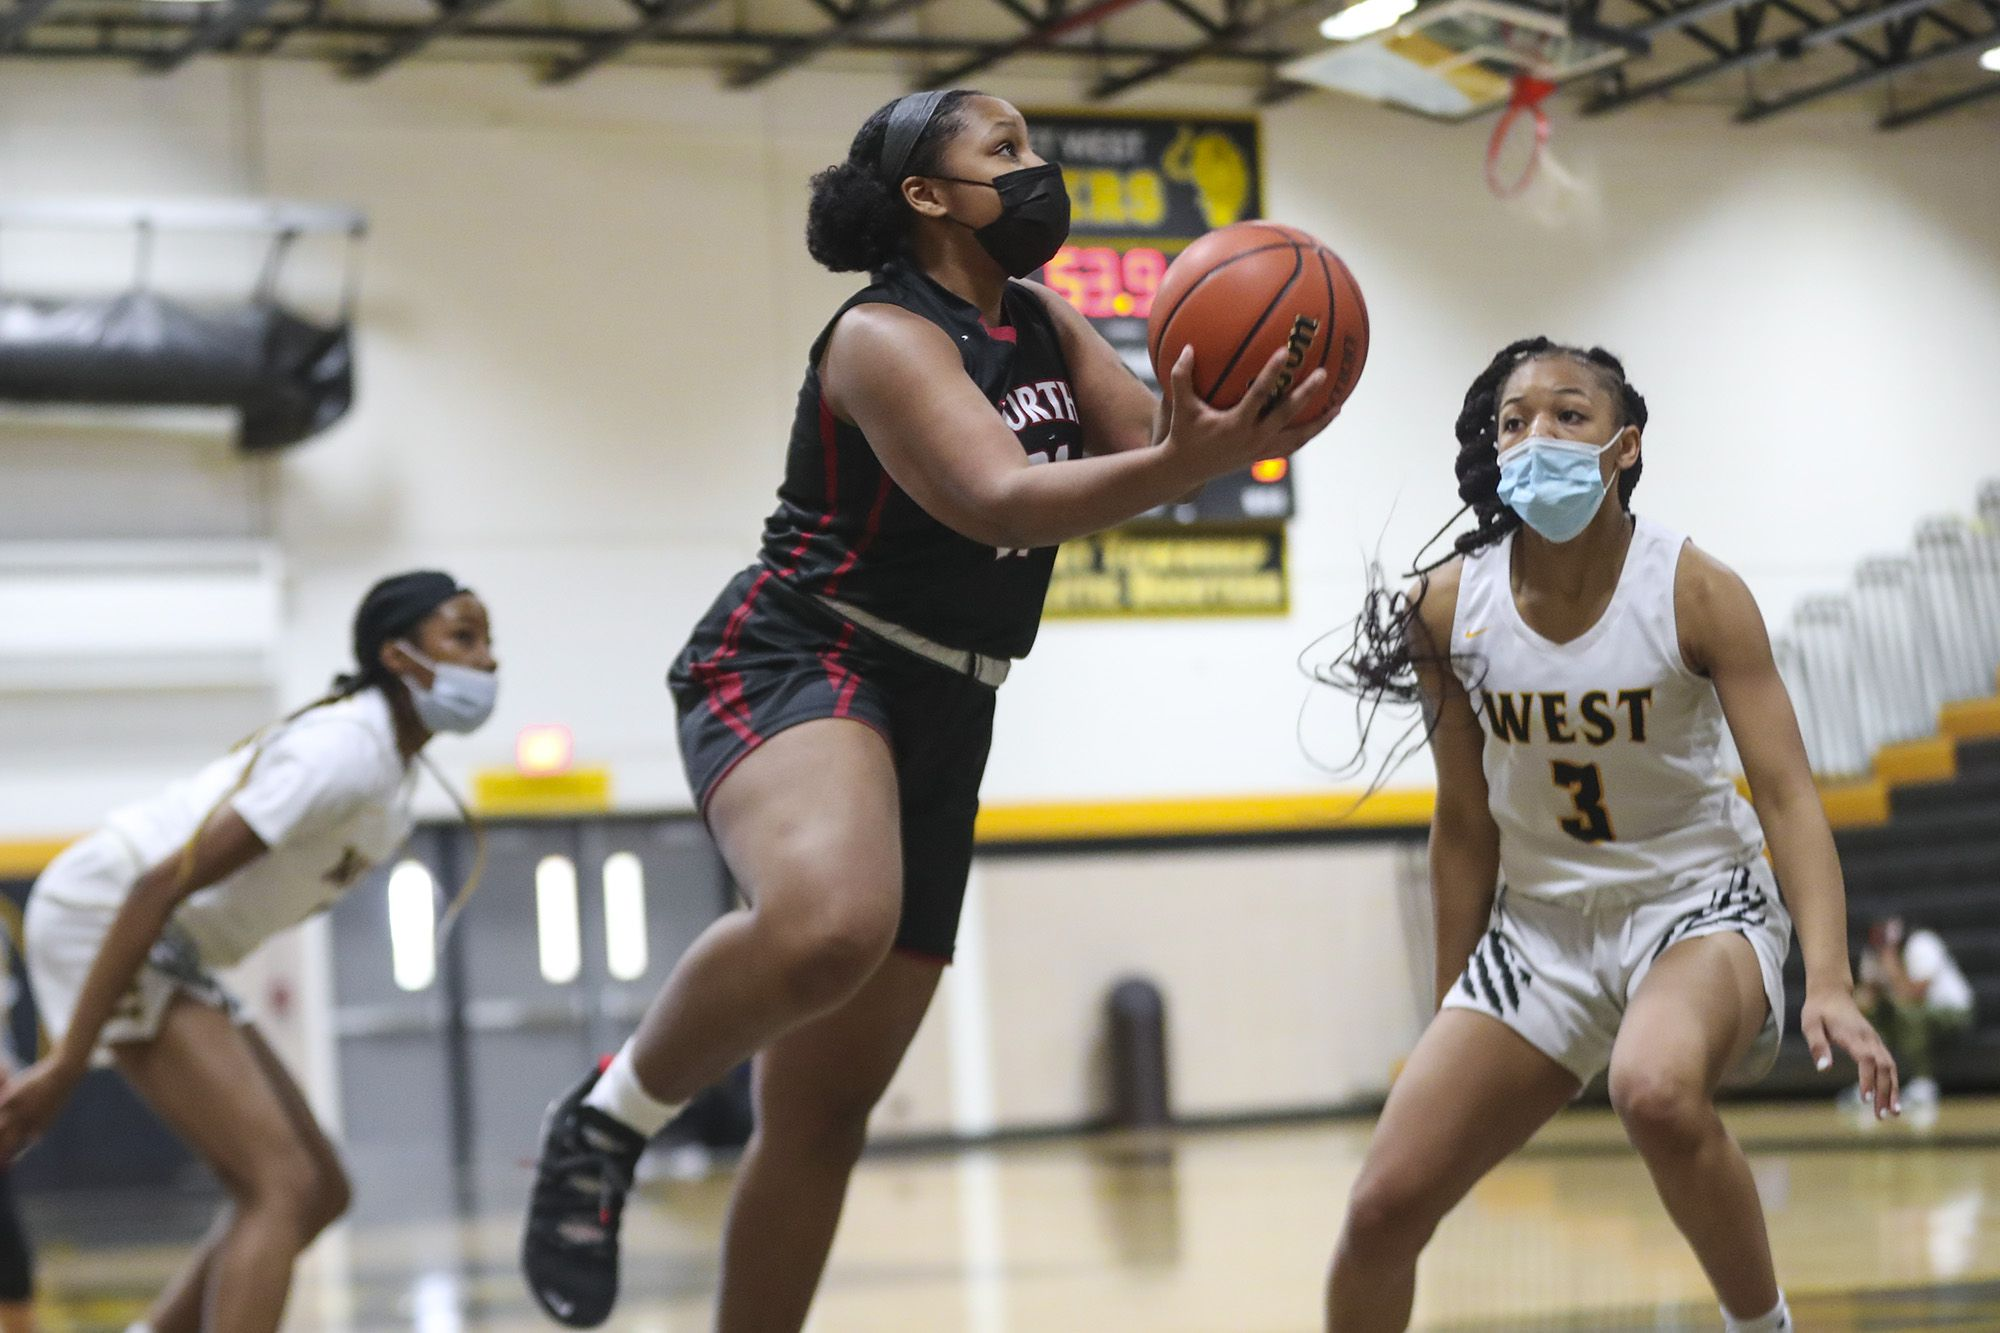 Plainfield North's Yasmine Bryant makes a layup on Saturday, March 13, 2021, at Joliet West High School in Joliet, Ill.